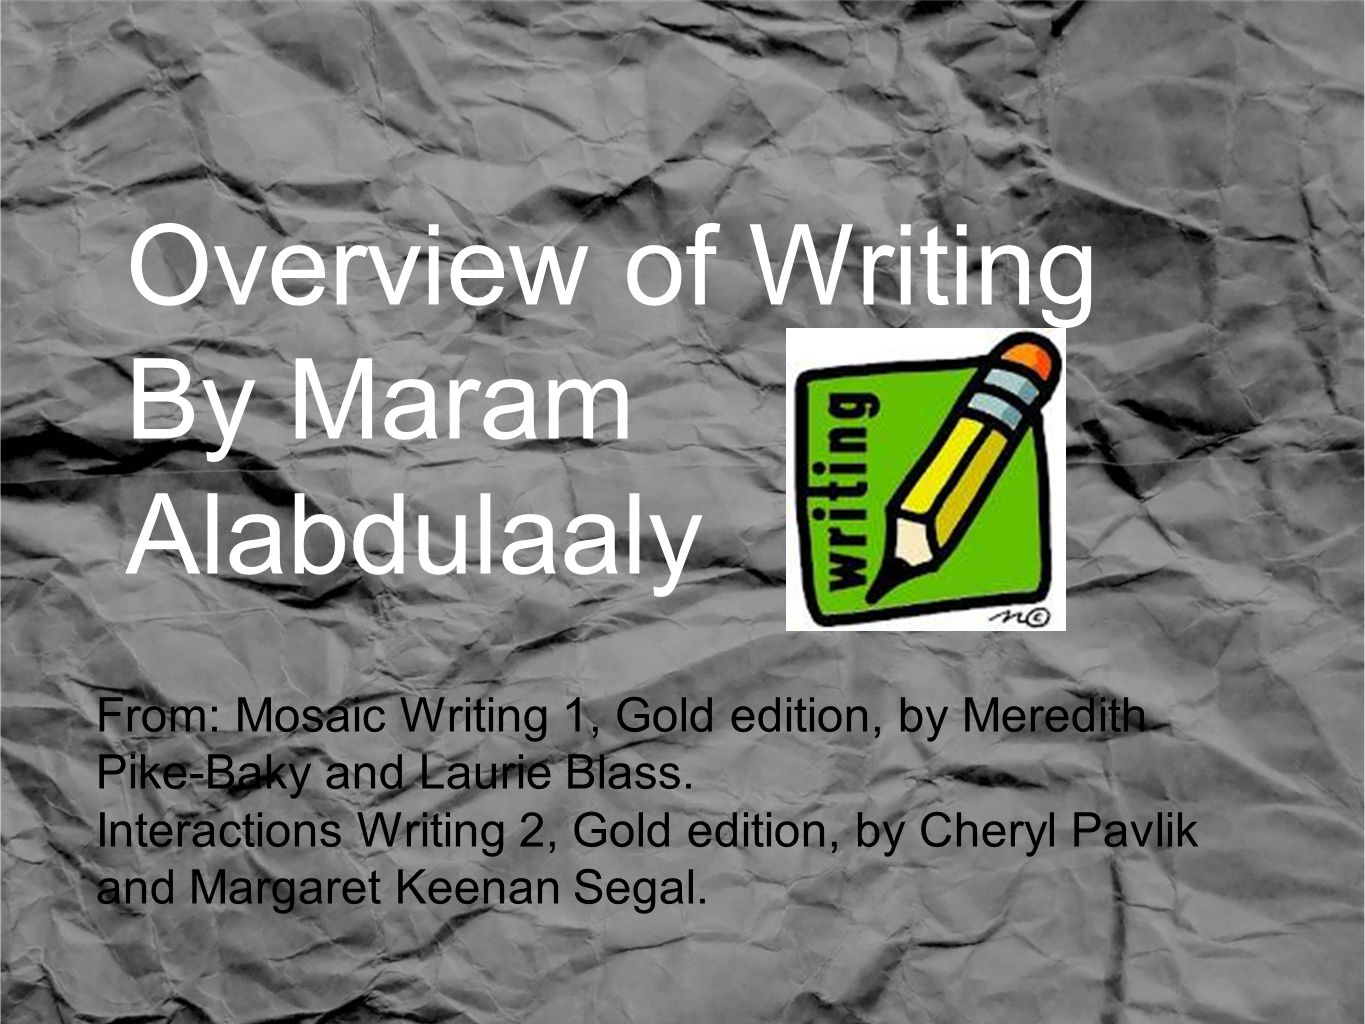 Overview of Writing By Maram Alabdulaaly From: Mosaic Writing 1, Gold edition, by Meredith Pike-Baky and Laurie Blass.